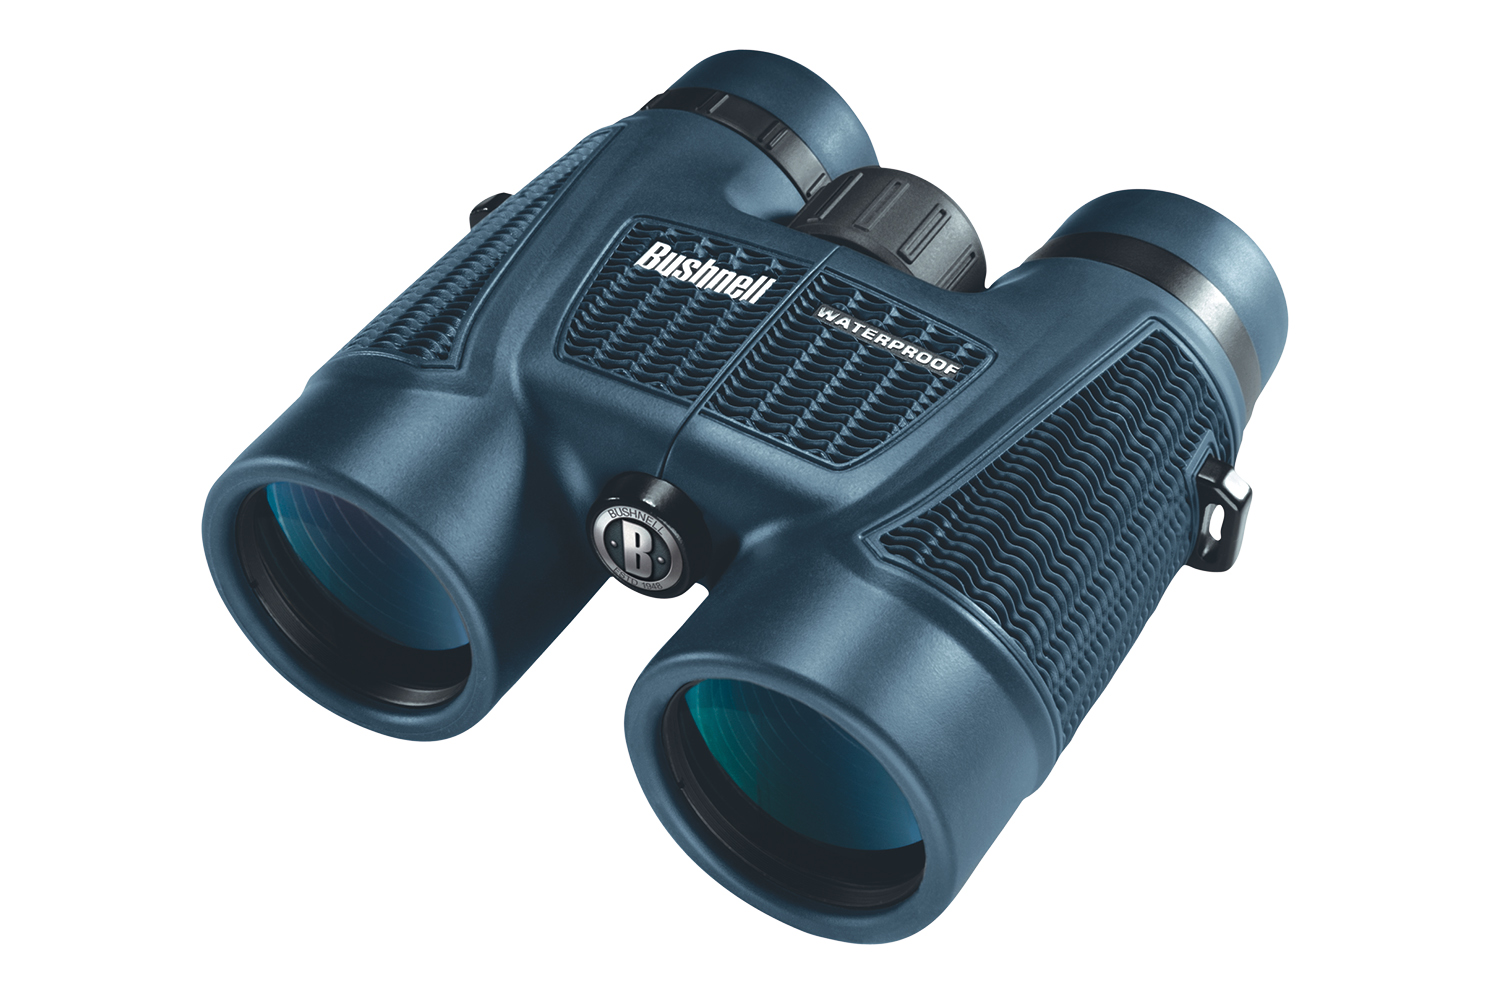 Бинокль Bushnell H2O ROOF 10x42 бинокль carl zeiss 10x42 hd conquest